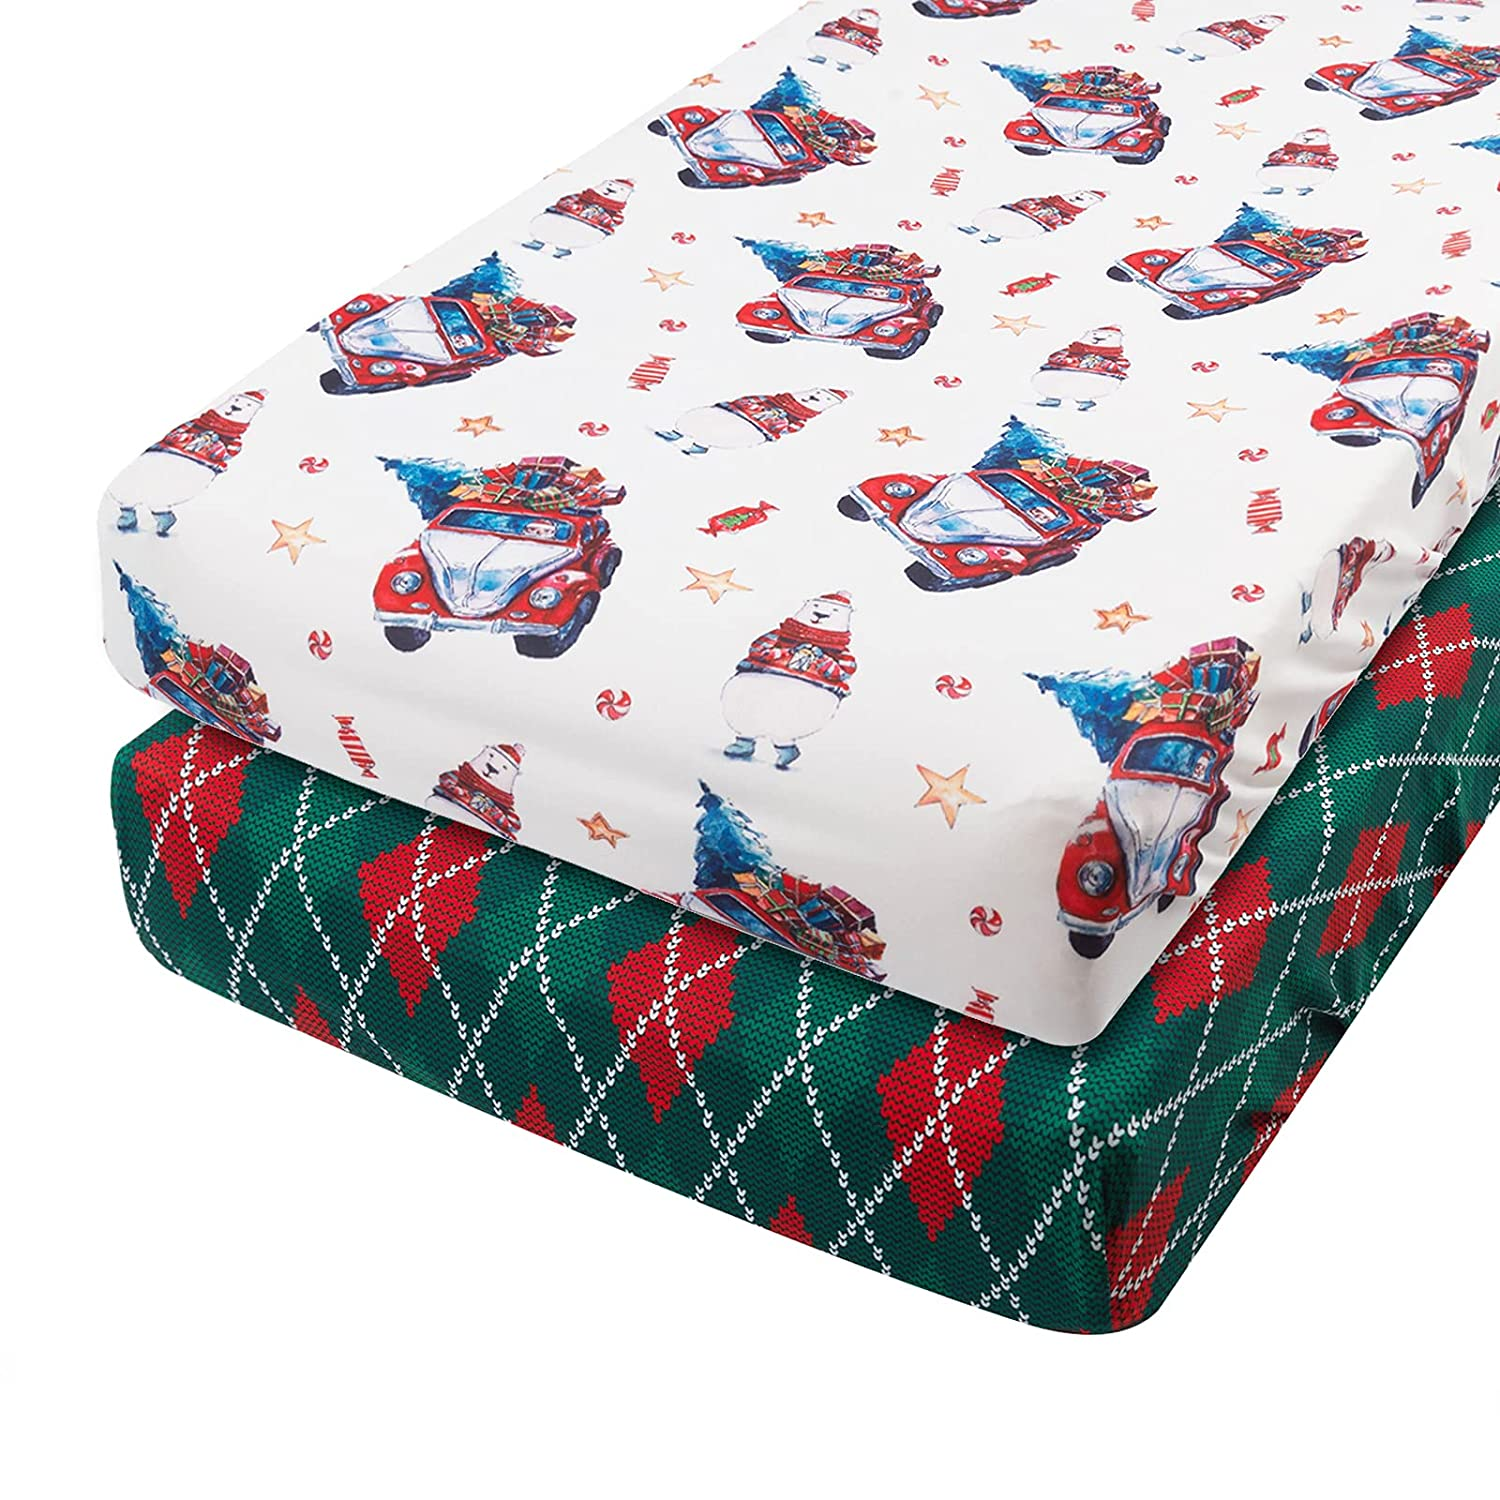 Babygoal Christmas Stretchy Unisex Diaper Changing Covers for Baby Girls and Boys,Soft and Light-Fits Changing Pads and Cradle Mattress 32